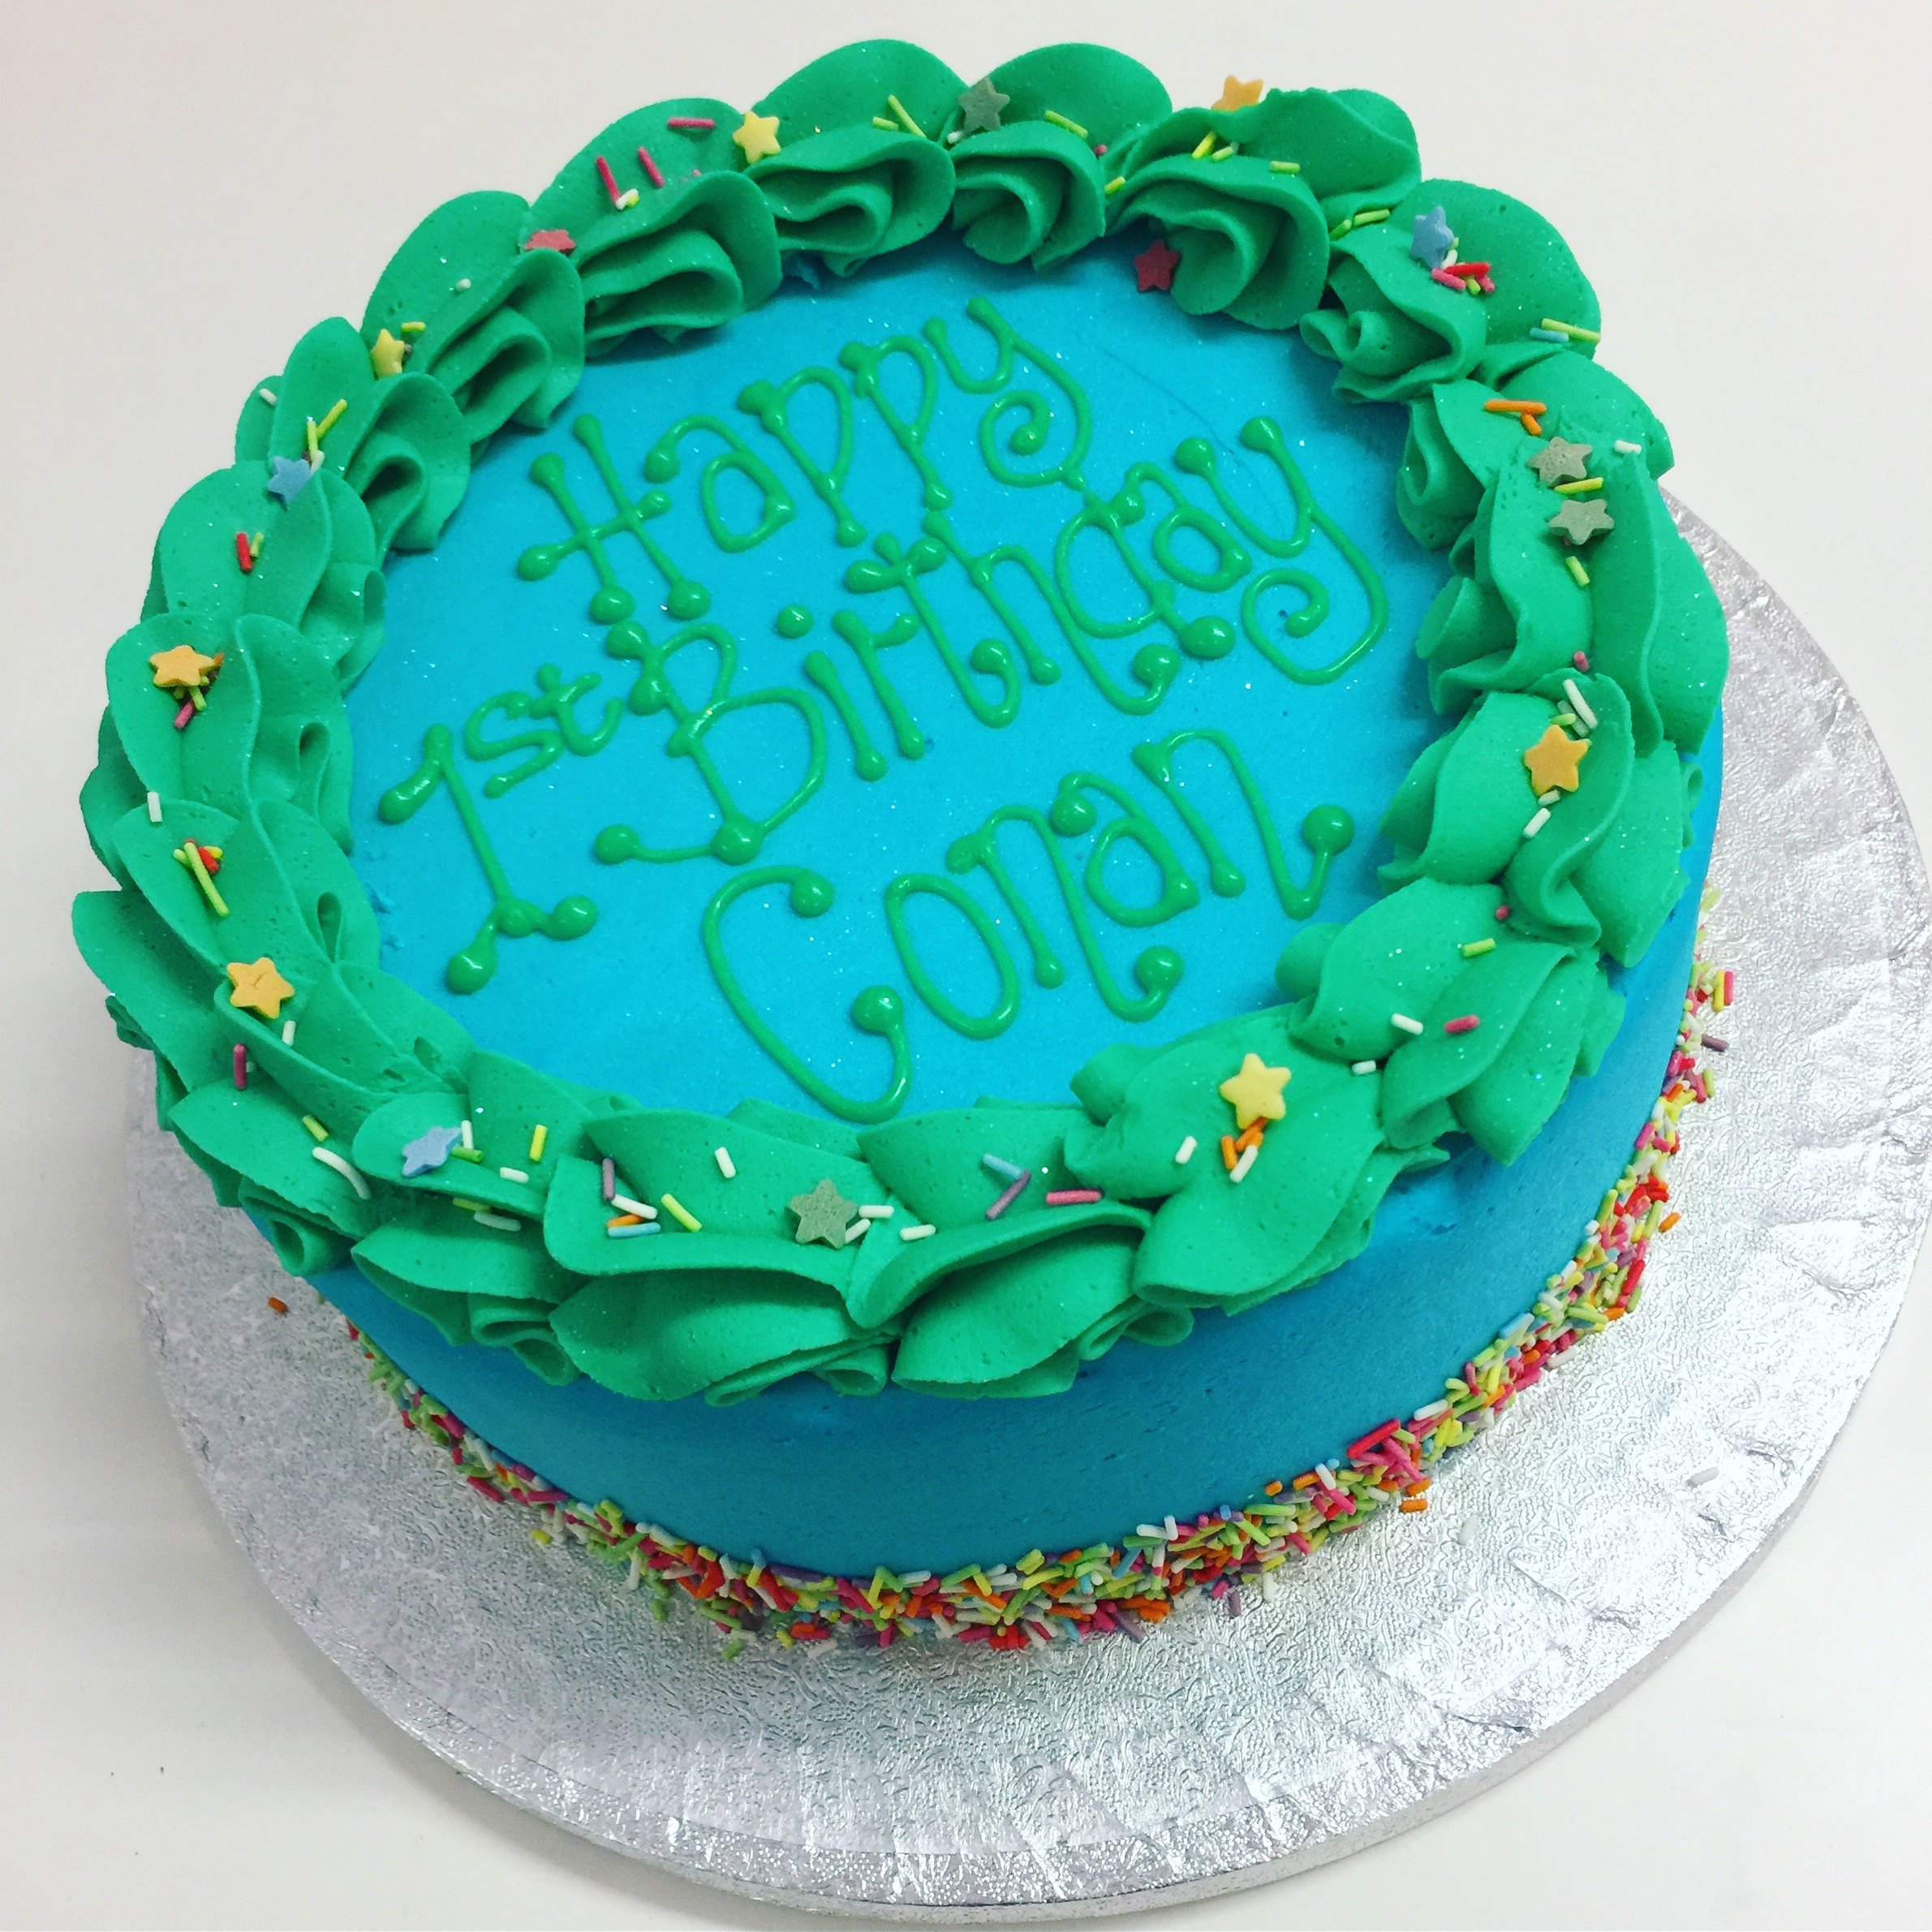 Blue & Green with Sprinkle Bottom